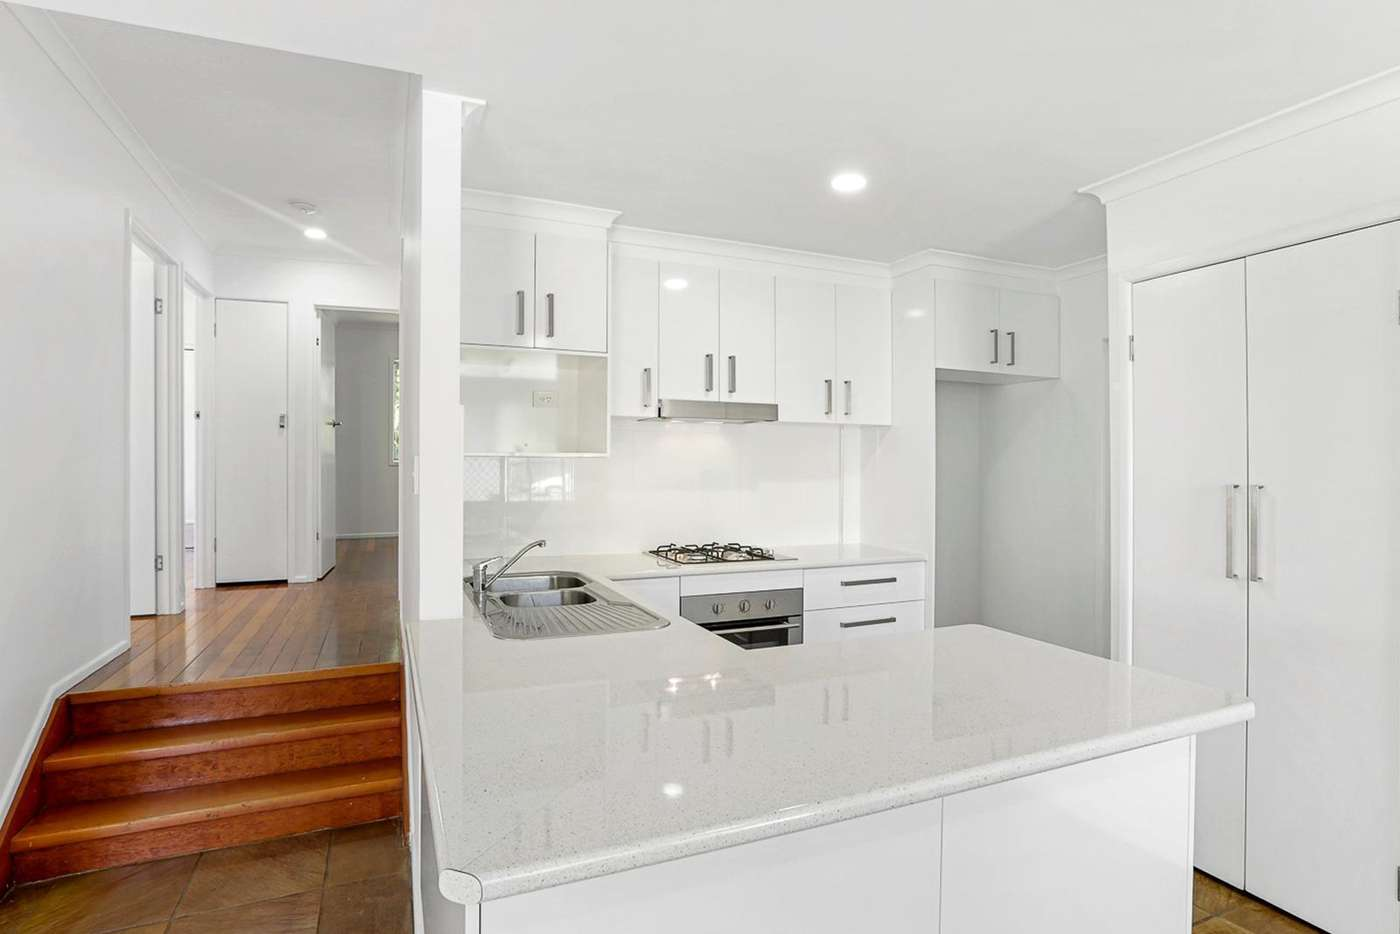 Main view of Homely house listing, 43 Bellevue Parade, Labrador QLD 4215